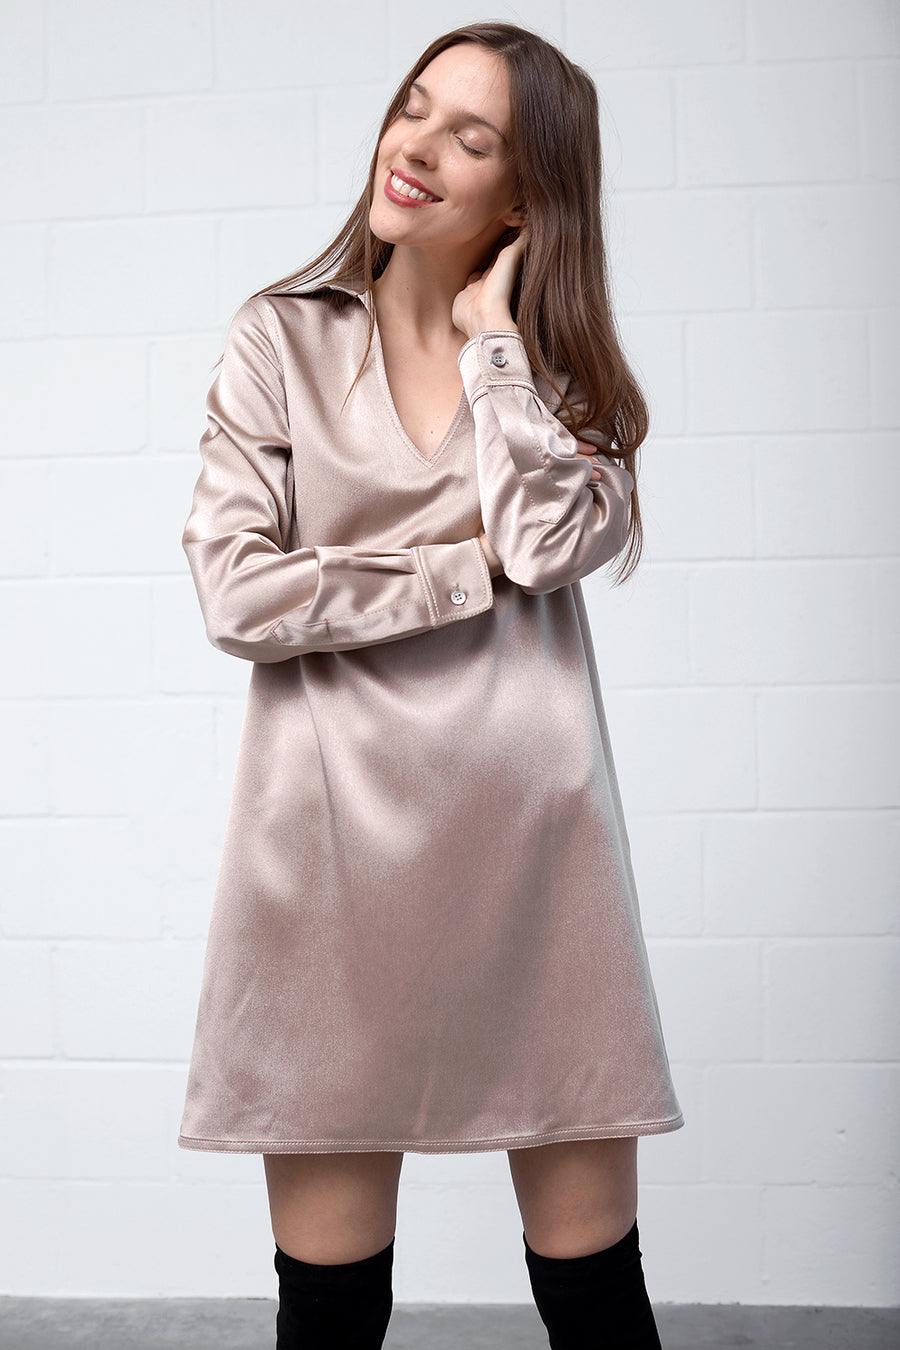 Adimona 603 Dress - taupe